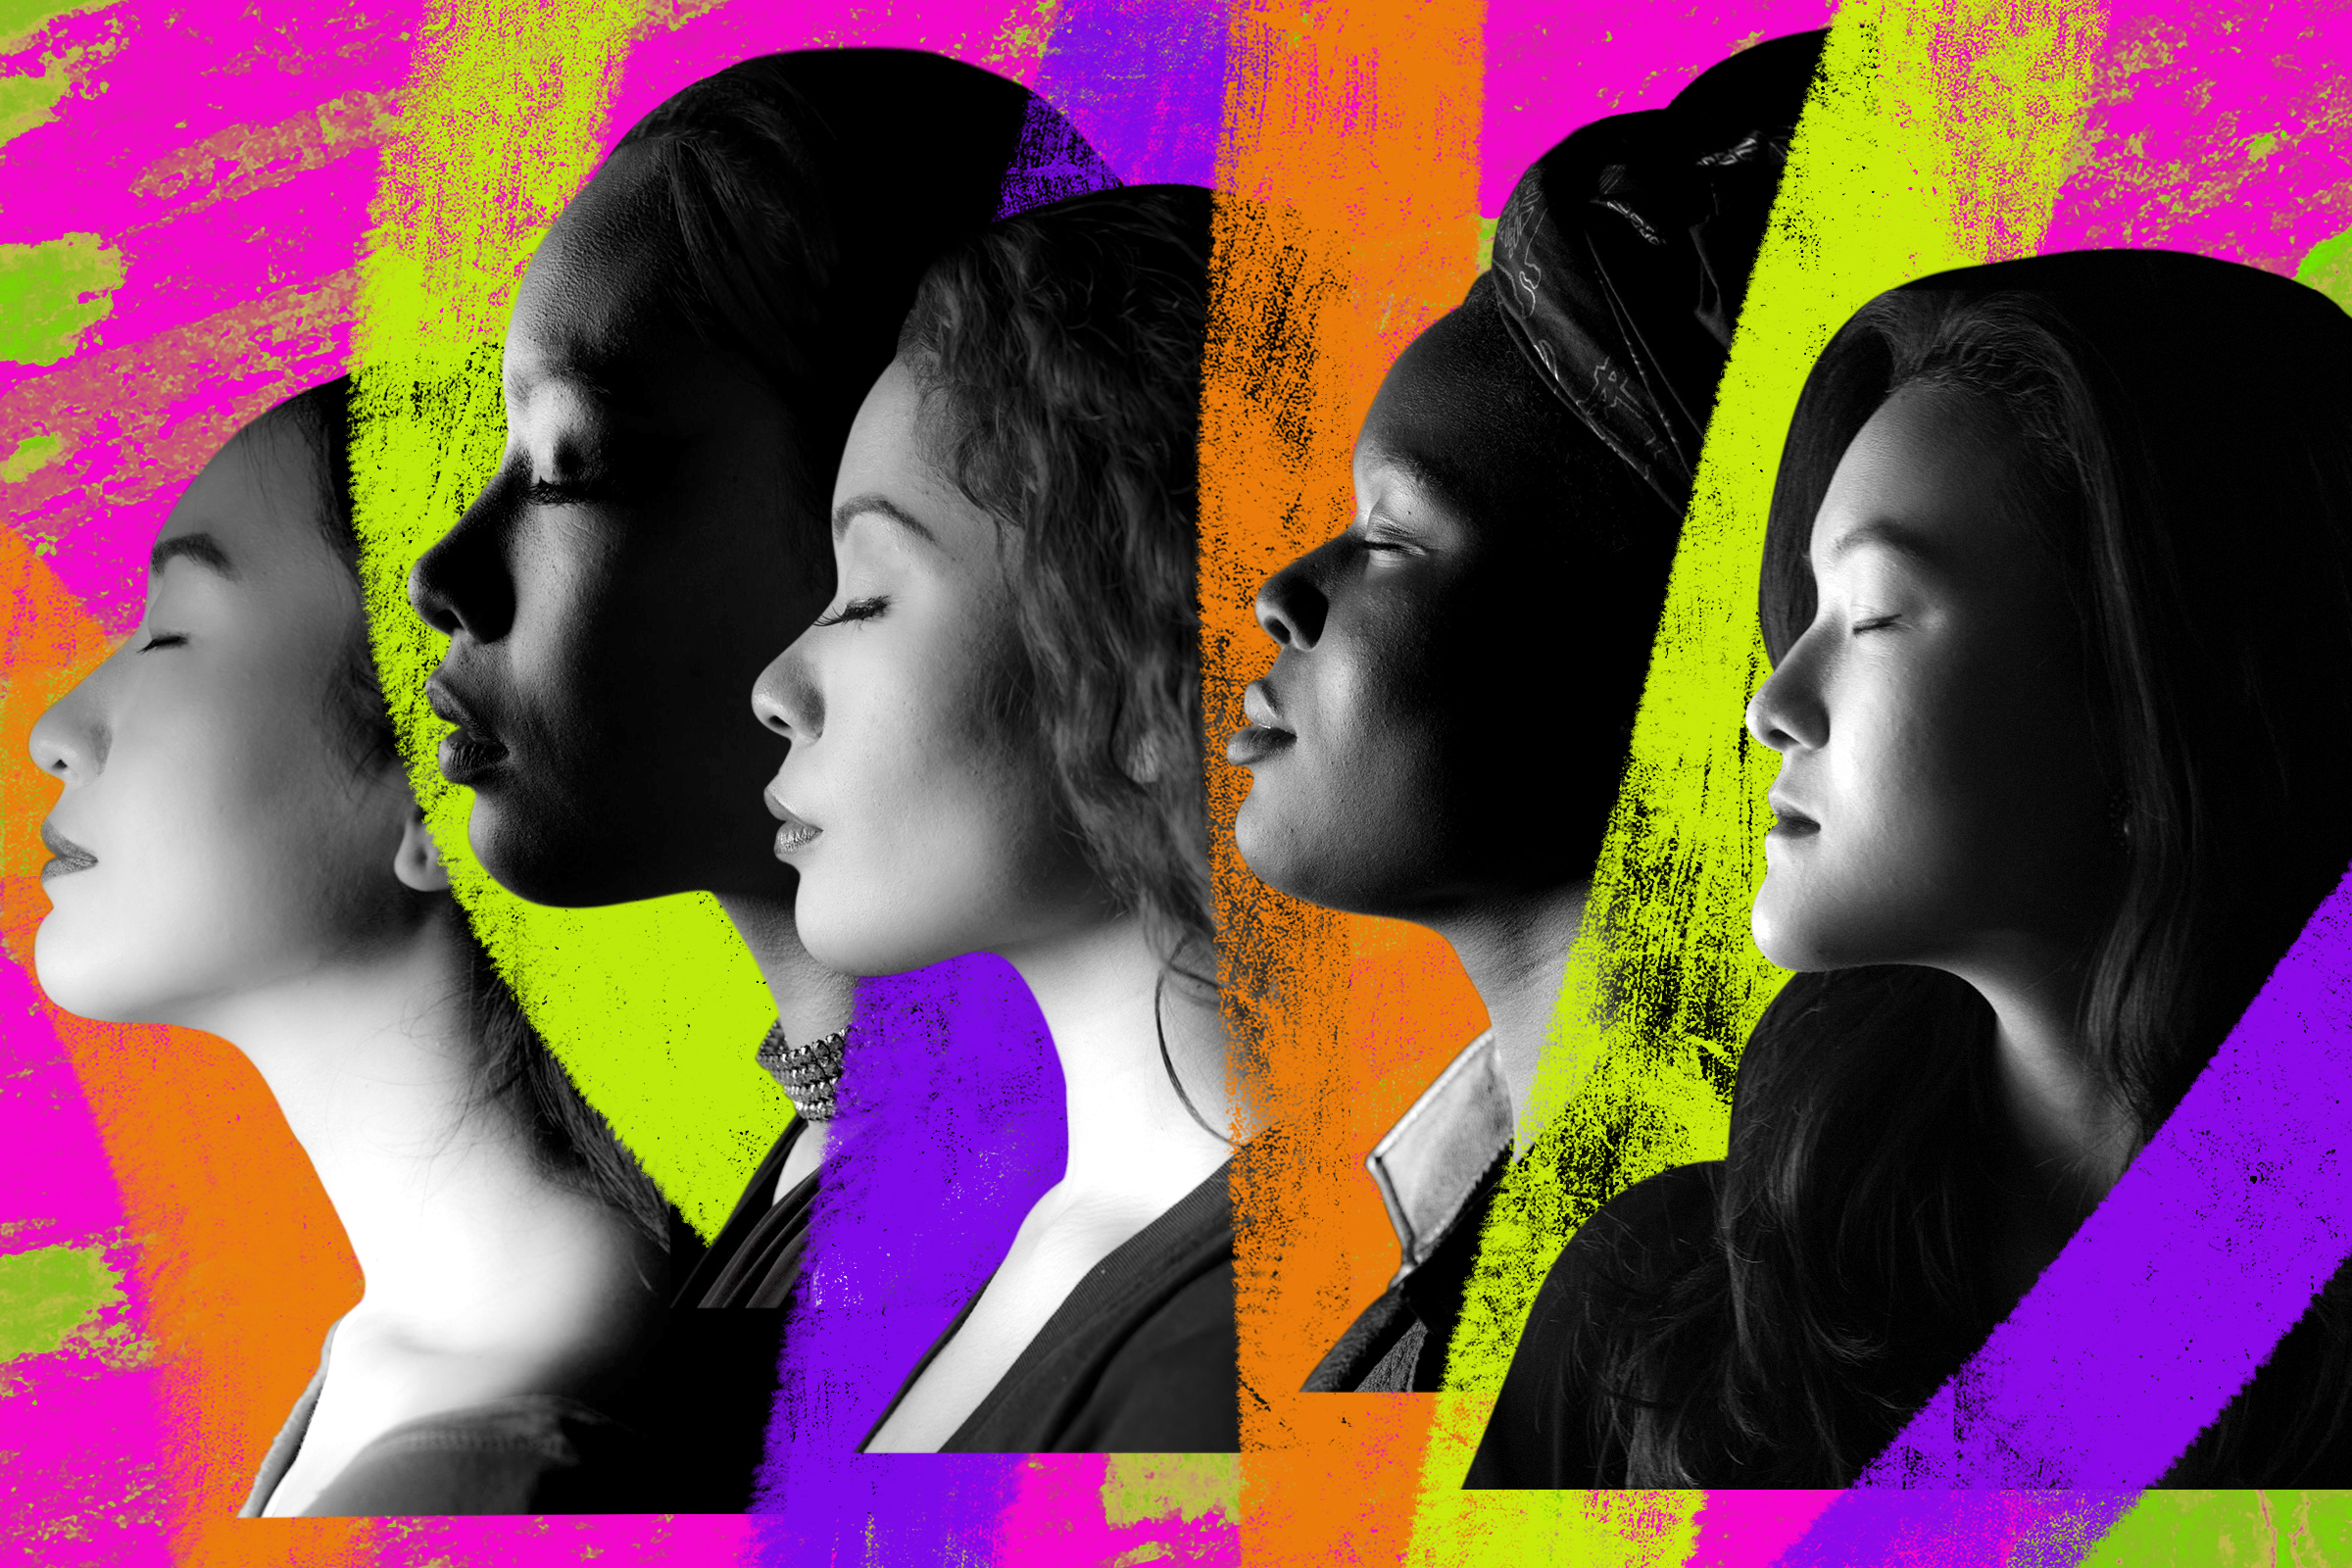 collage of different women's profiles in a row with their eyes closed on a multi-colored background